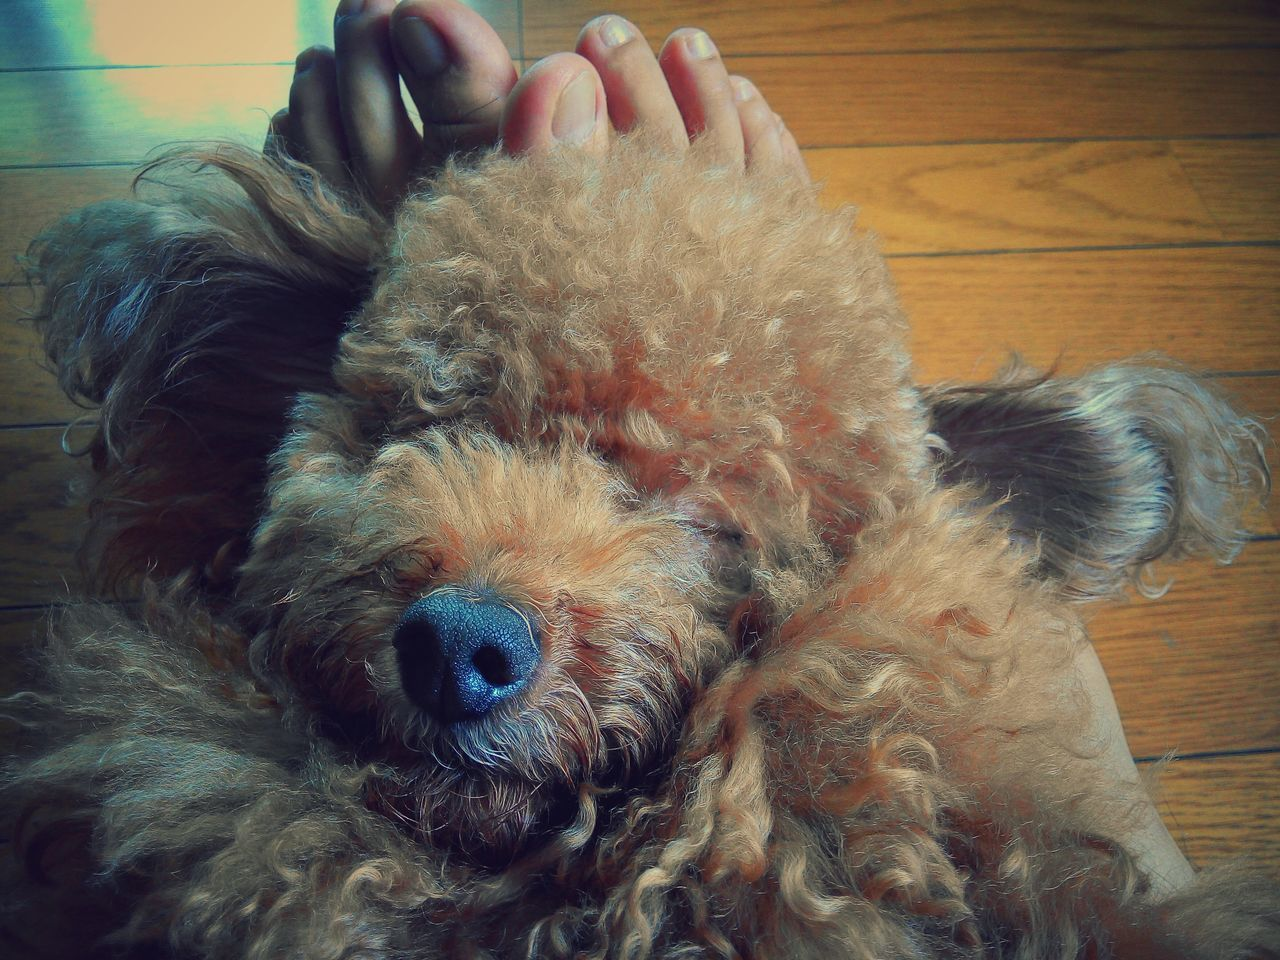 Sleeping beauty 😍 Poodle Relaxing Dog Lover Cute Dog  Doglife Poodletoy Cutepet Resting Laziness Animal Nose Focus On Foreground